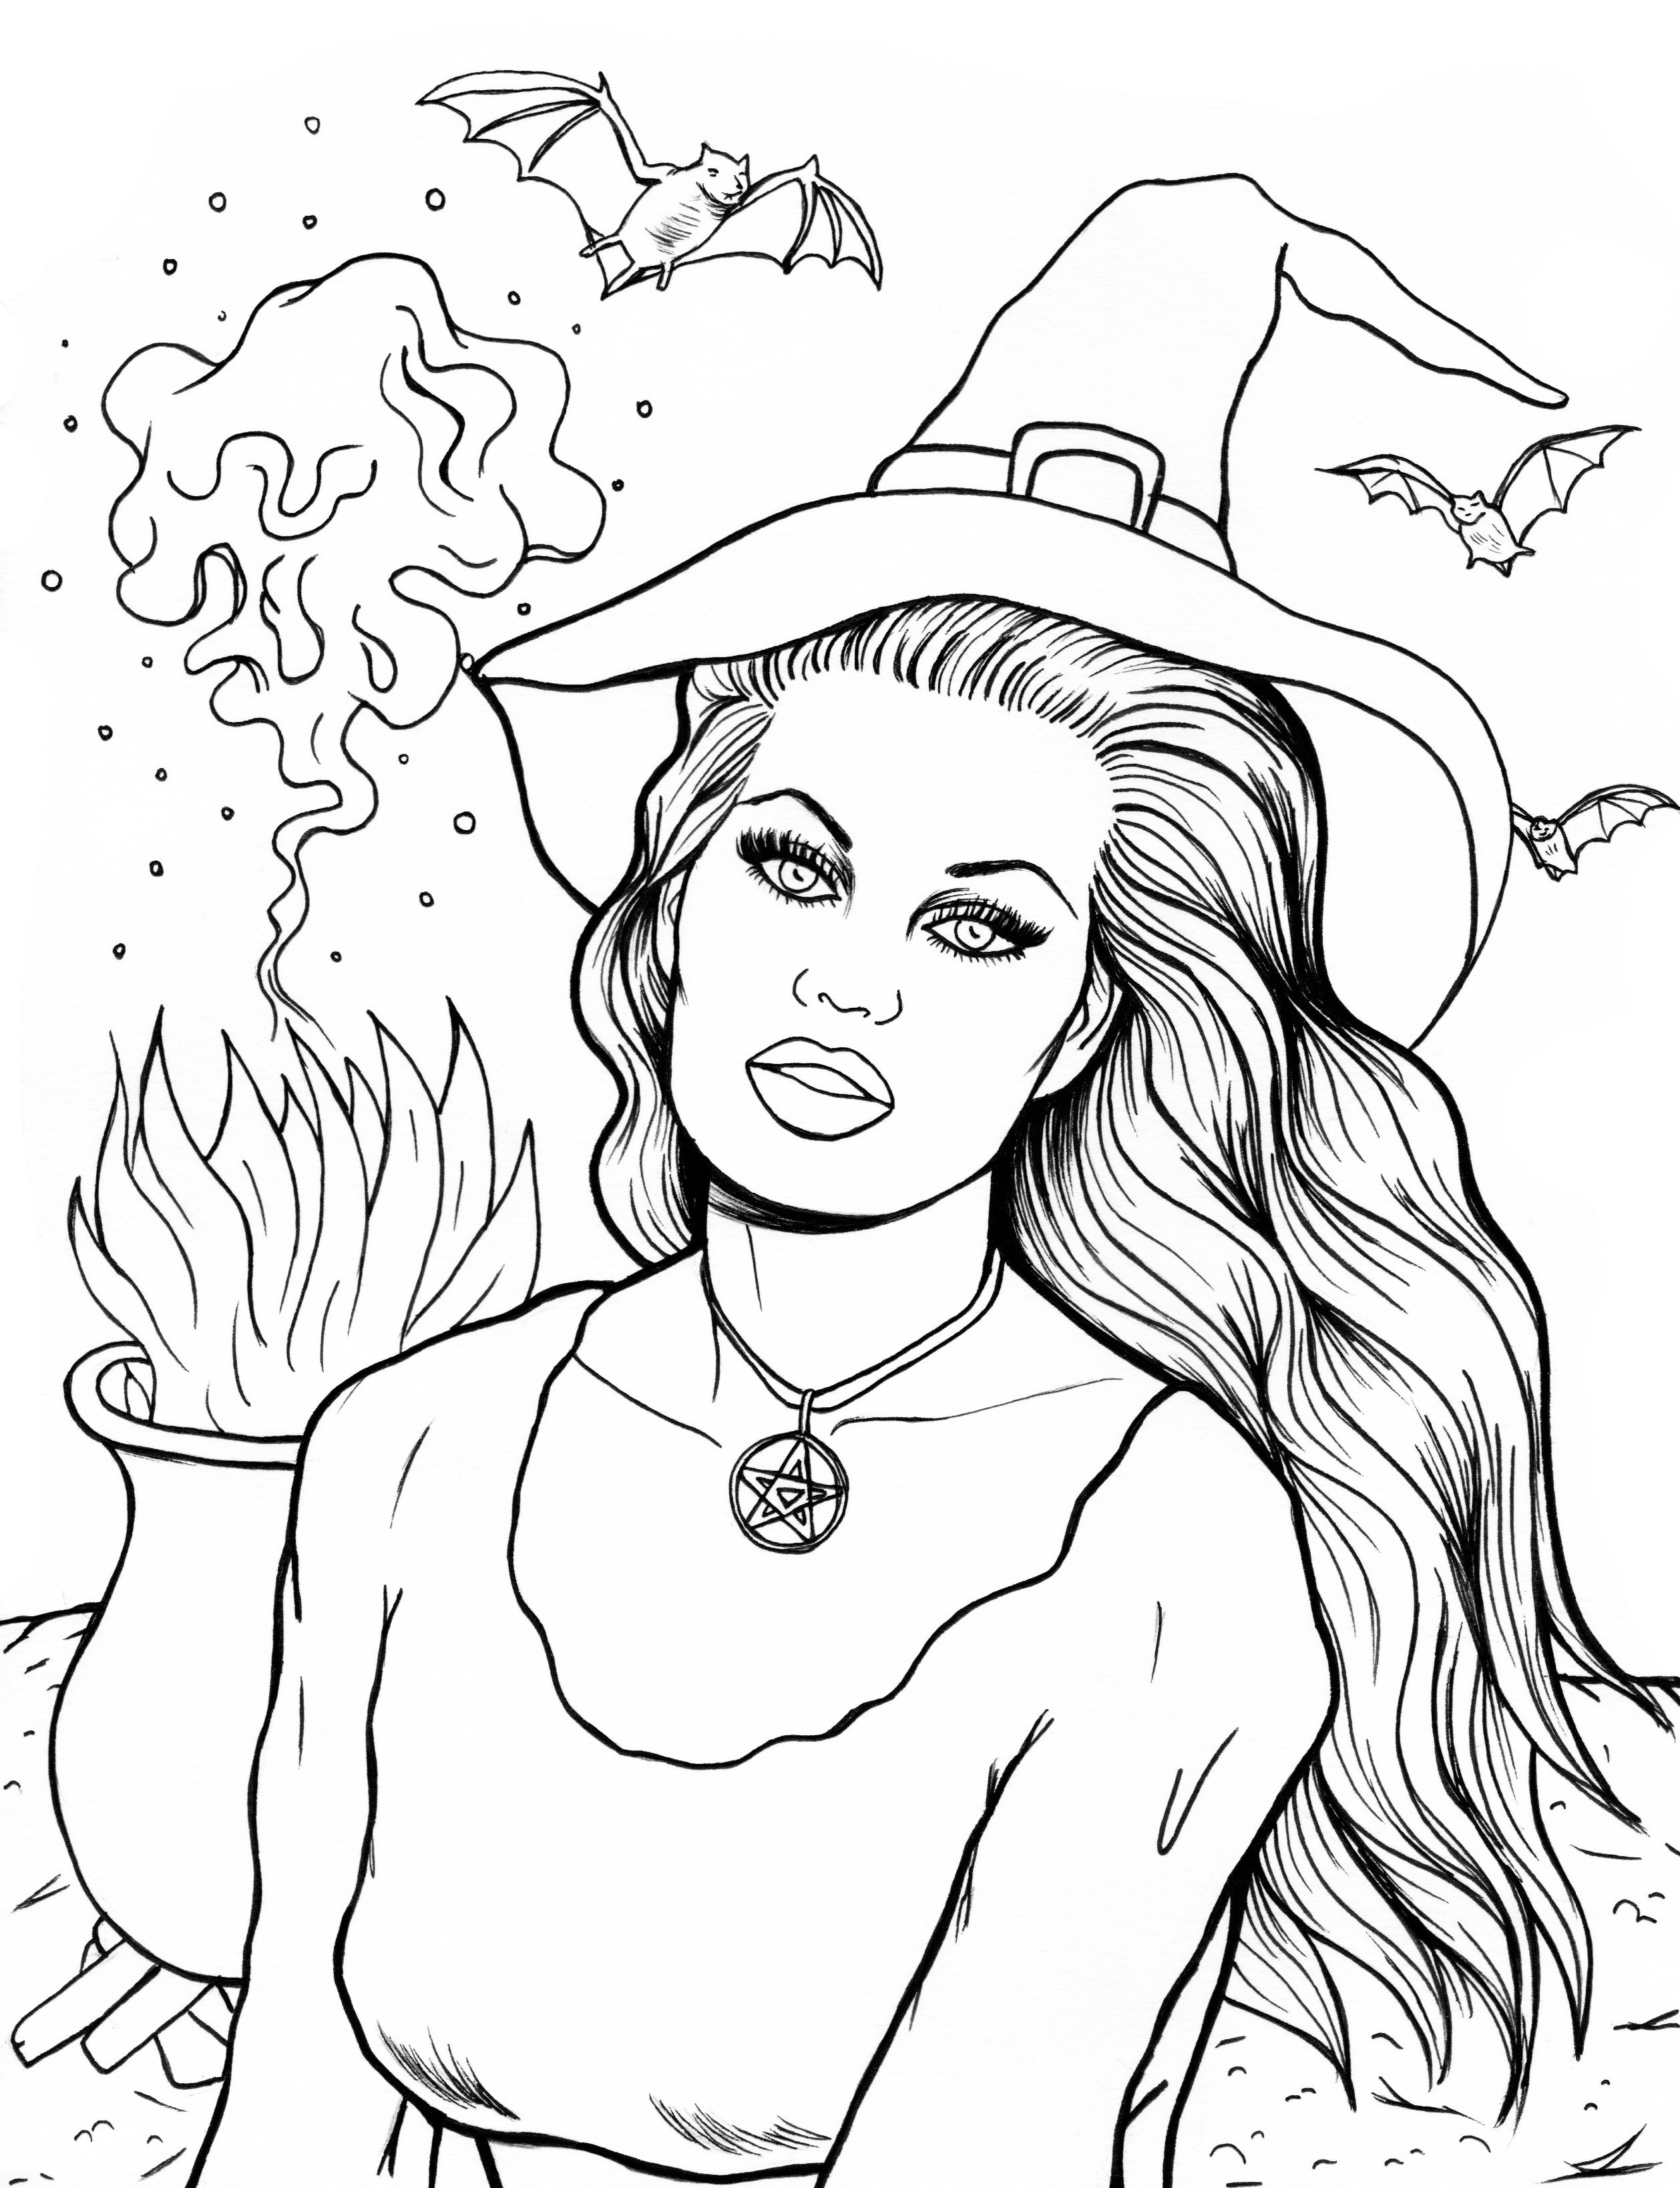 coloring sheets for halloween halloween coloring pages dr odd coloring halloween sheets for